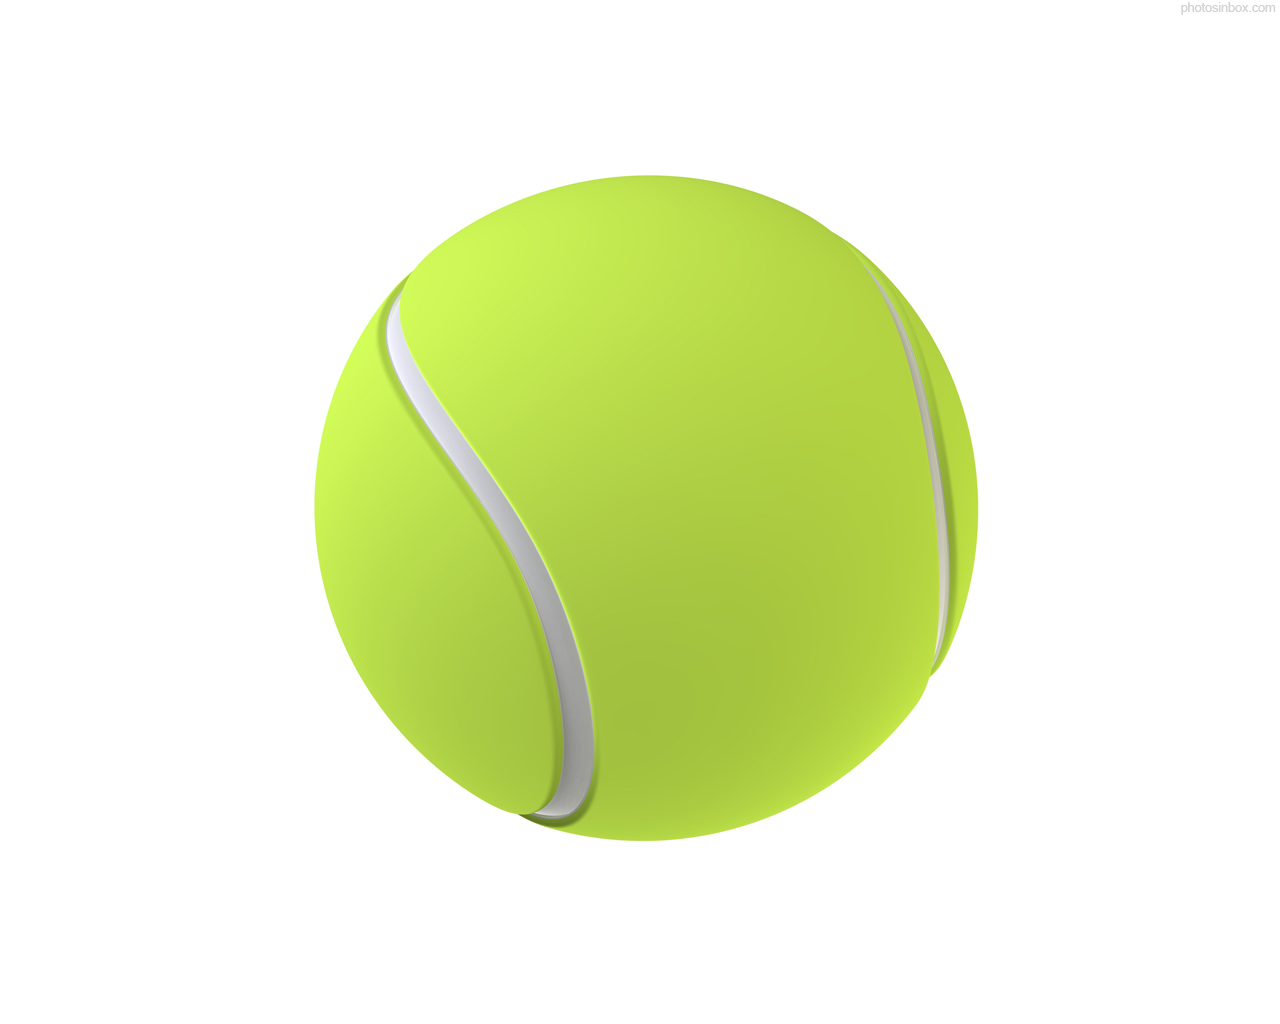 Tennis Ball clipart #7, Download drawings